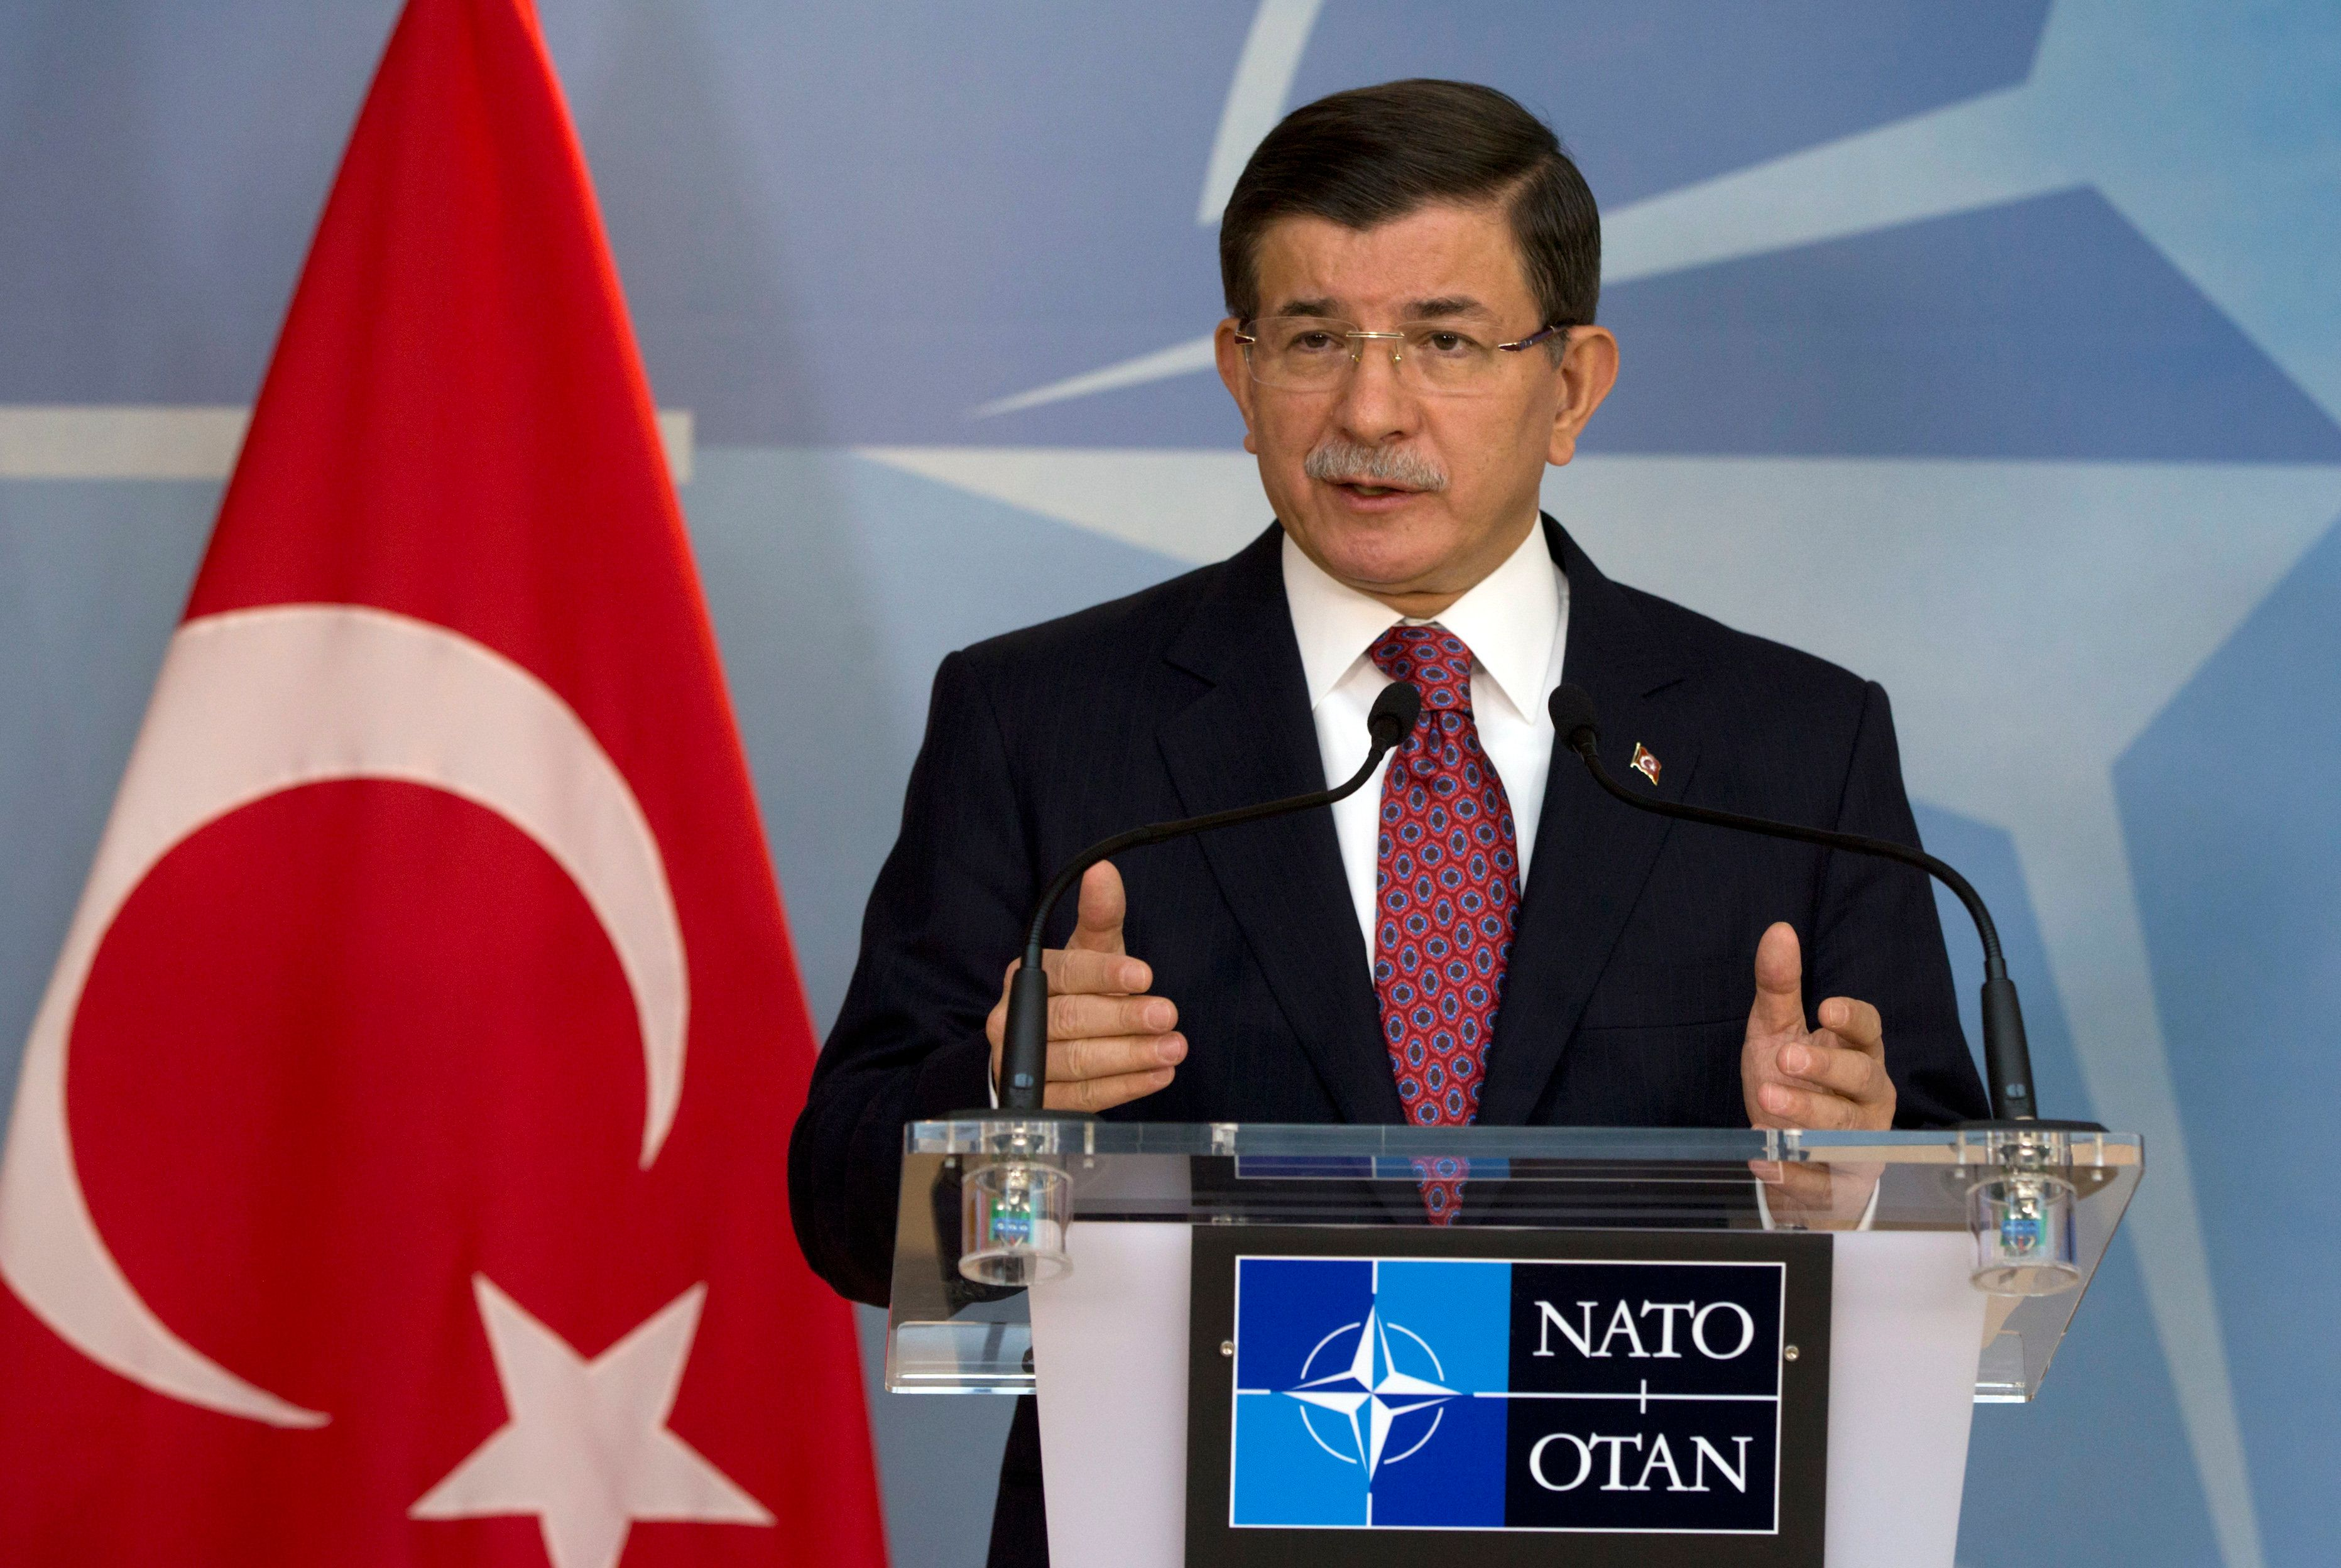 Turkish Prime Minister Ahmet Davutoglu speaks during a media conference at NATO headquarters in Brussels on Monday, Nov. 30, 2015. NATO Secretary General Jens Stoltenberg met with the Turkish prime minister on Monday to discuss the issue of a Russian warplane downed by a Turkish fighter jet at the border with Syria. (AP Photo/Virginia Mayo)